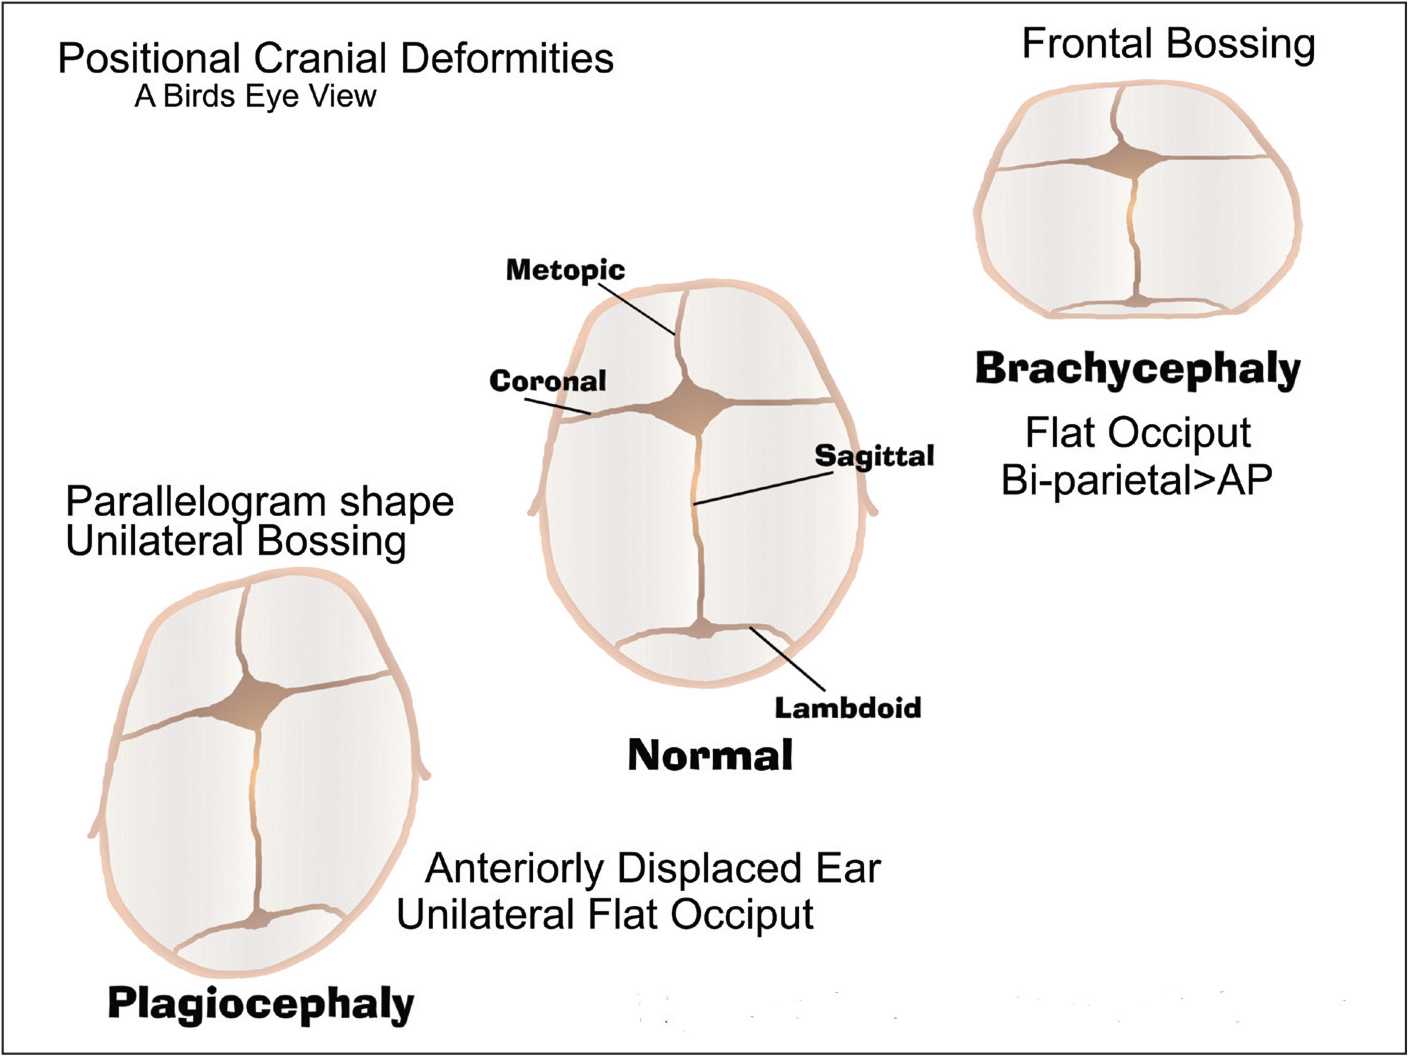 Positional cranial deformities. AP, anterior/posterior. Reprinted from Marshall15 with permission.